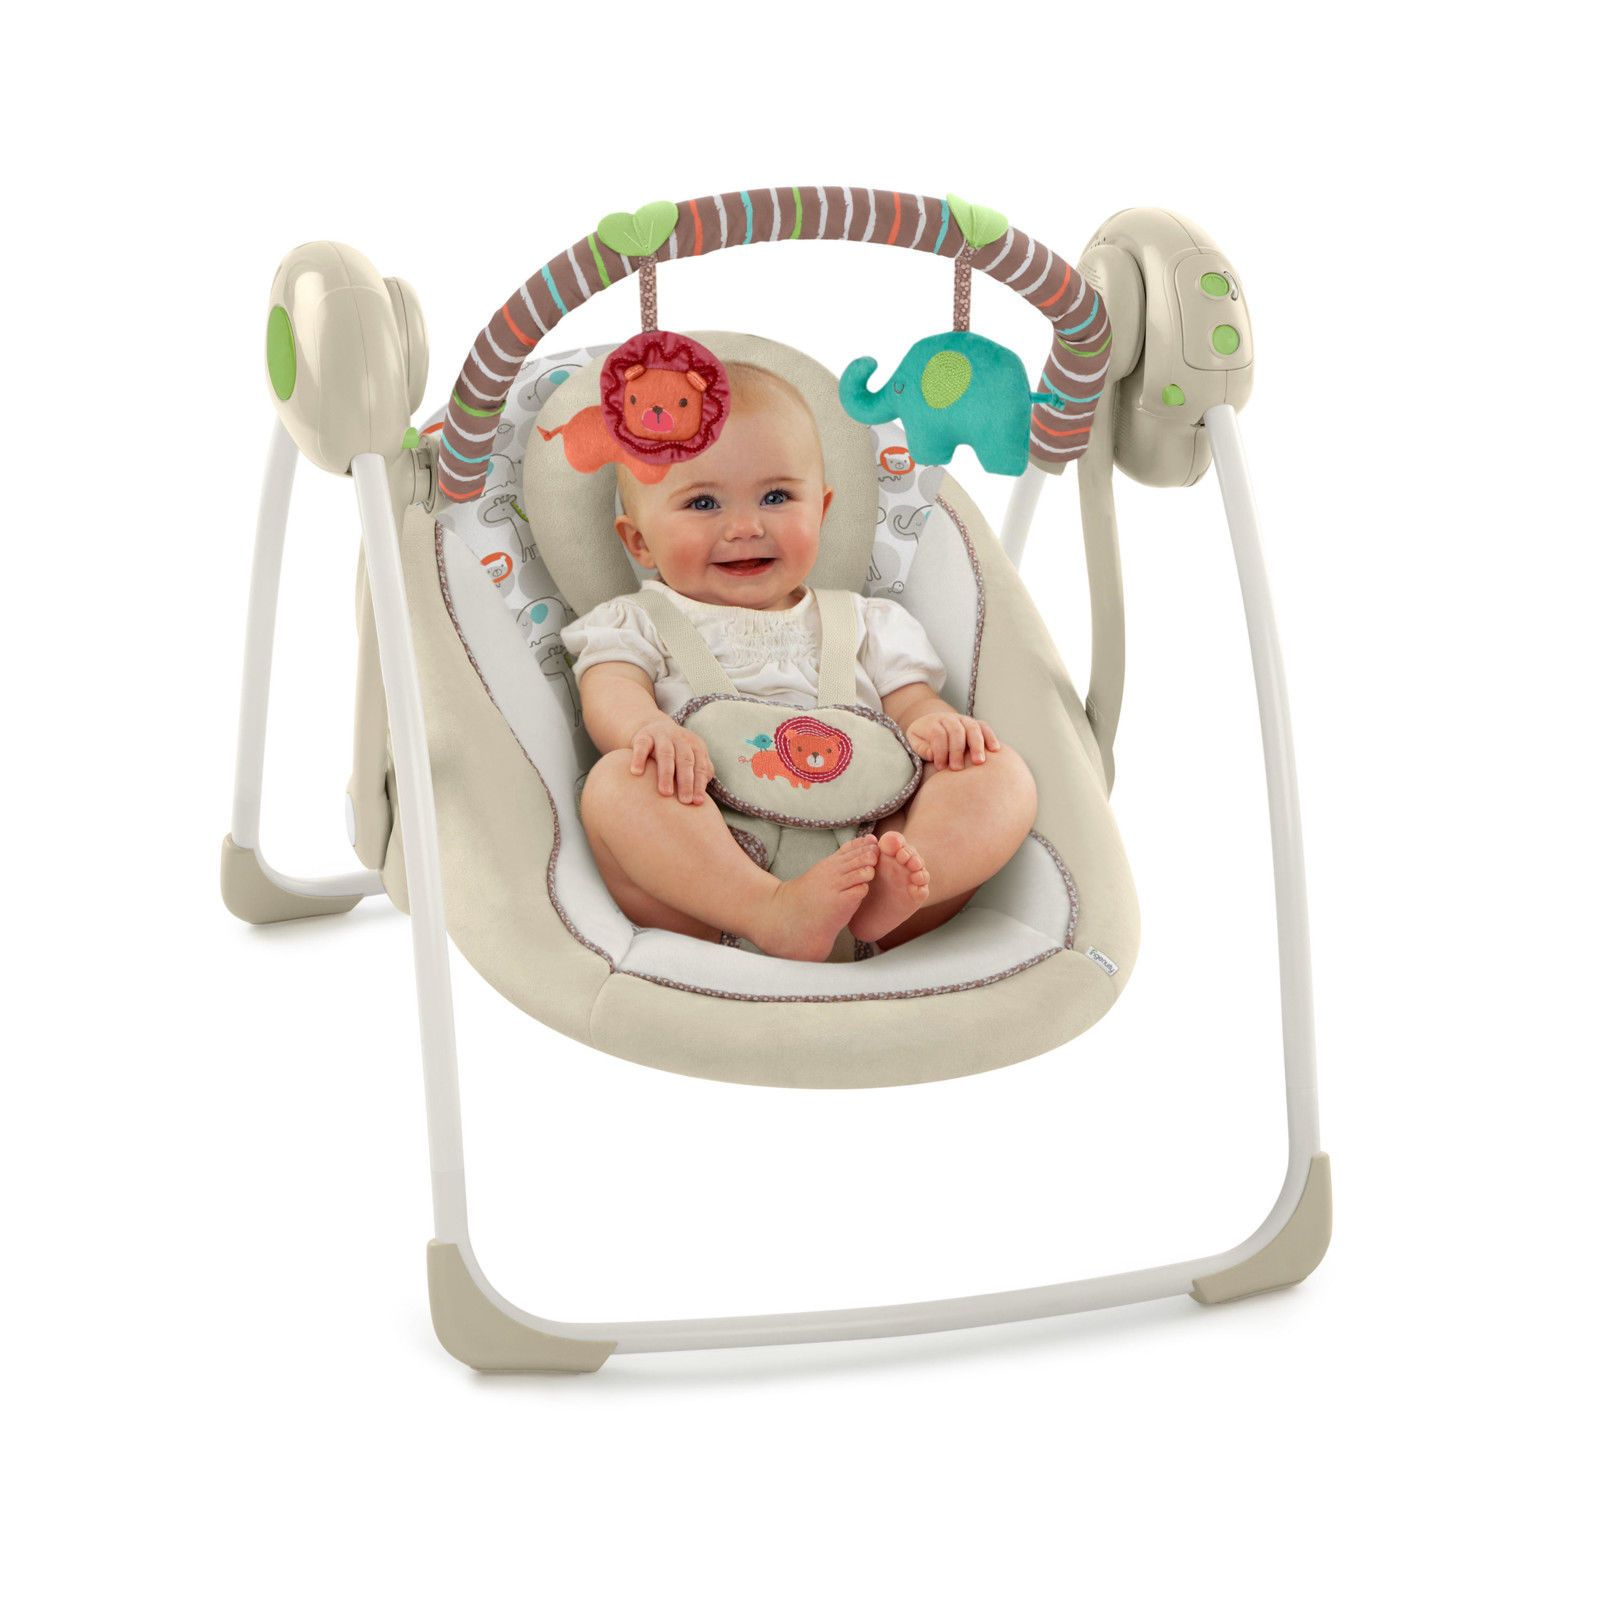 Baby Bouncer Swing Chair Cradle Rocker Seat Rocking Cradling Baby Chair Cozy